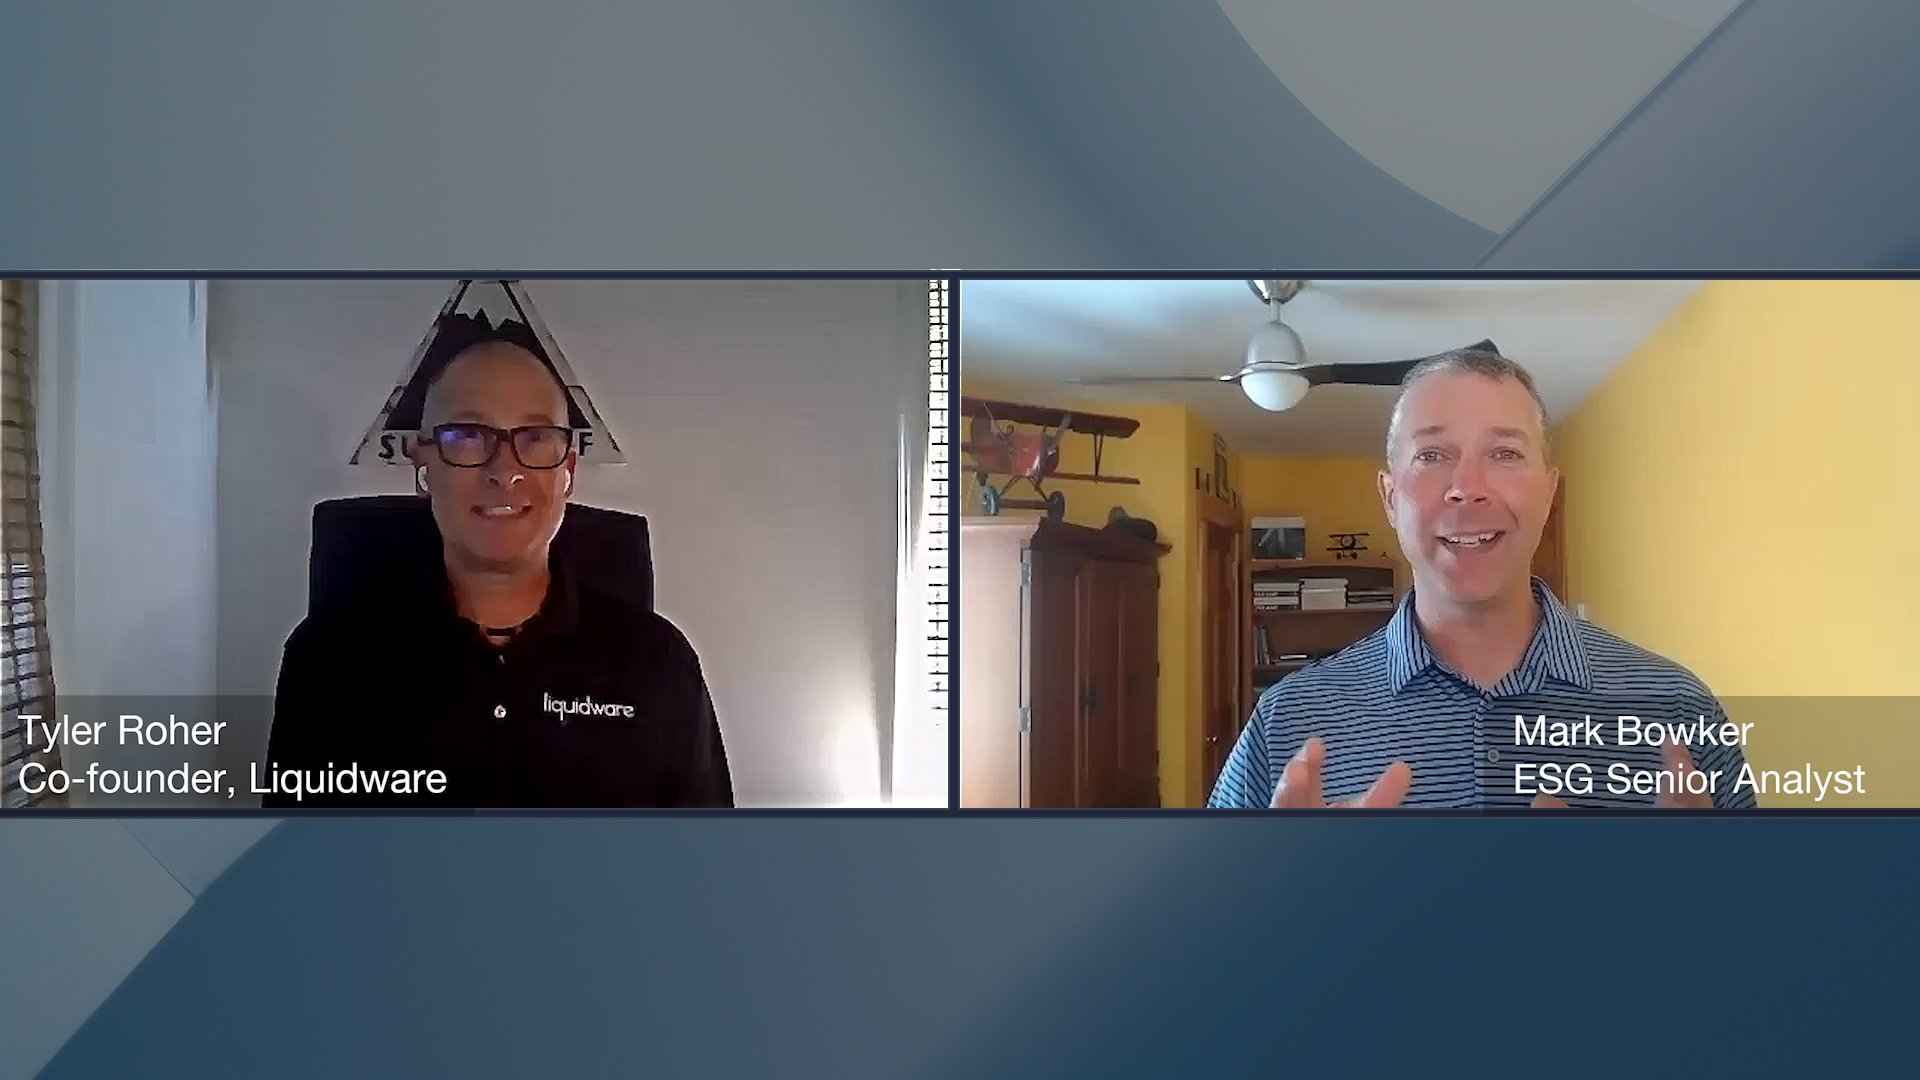 Work with Man's Best Friend: Video with J. Tyler Rohrer, CoFounder, Liquidware